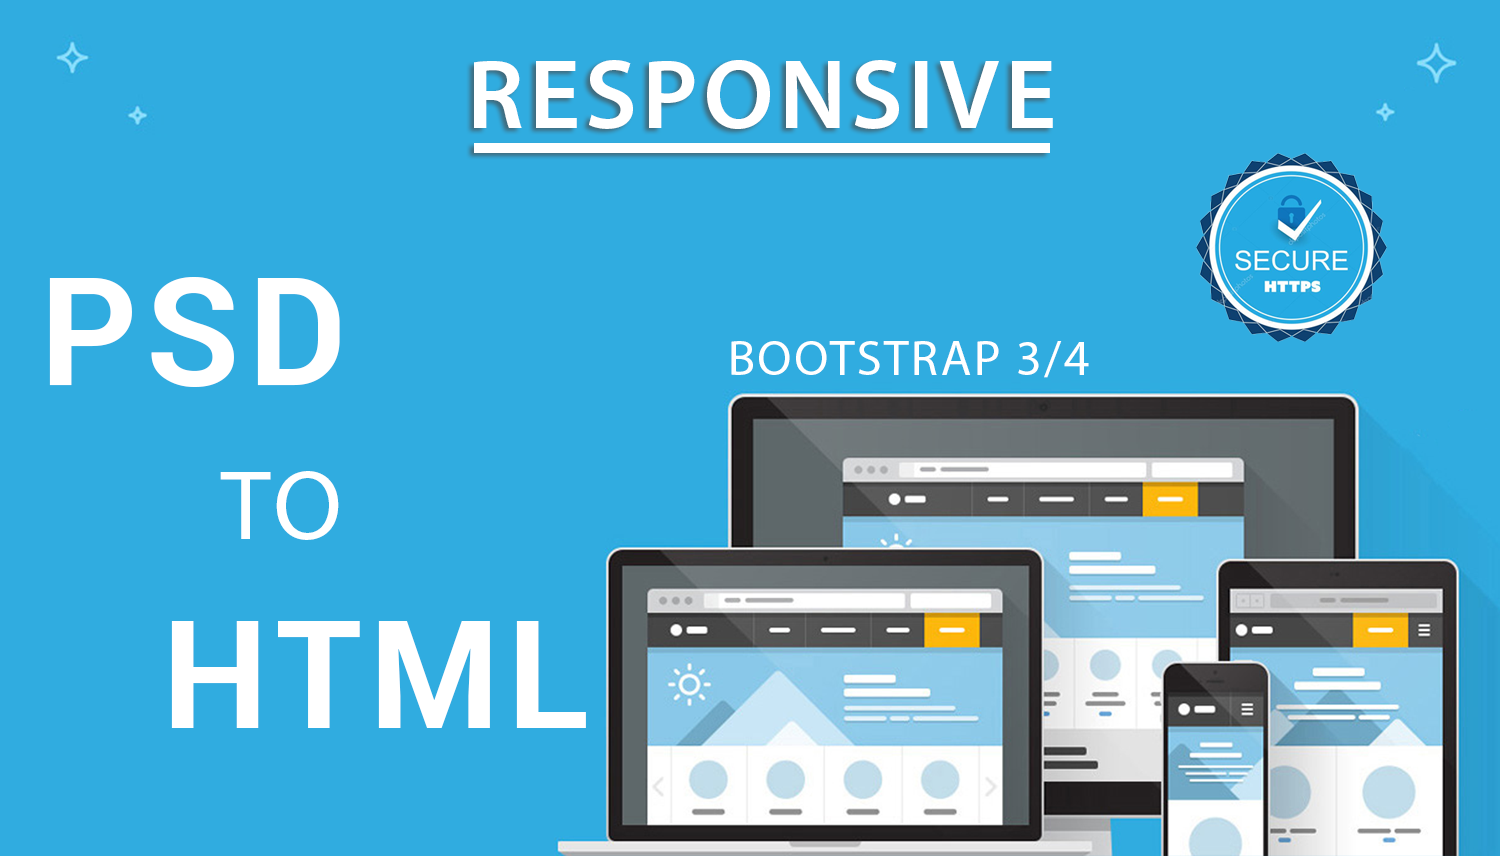 I Will convert PSD to HTML5 with CSS and responsive with BootStrap.